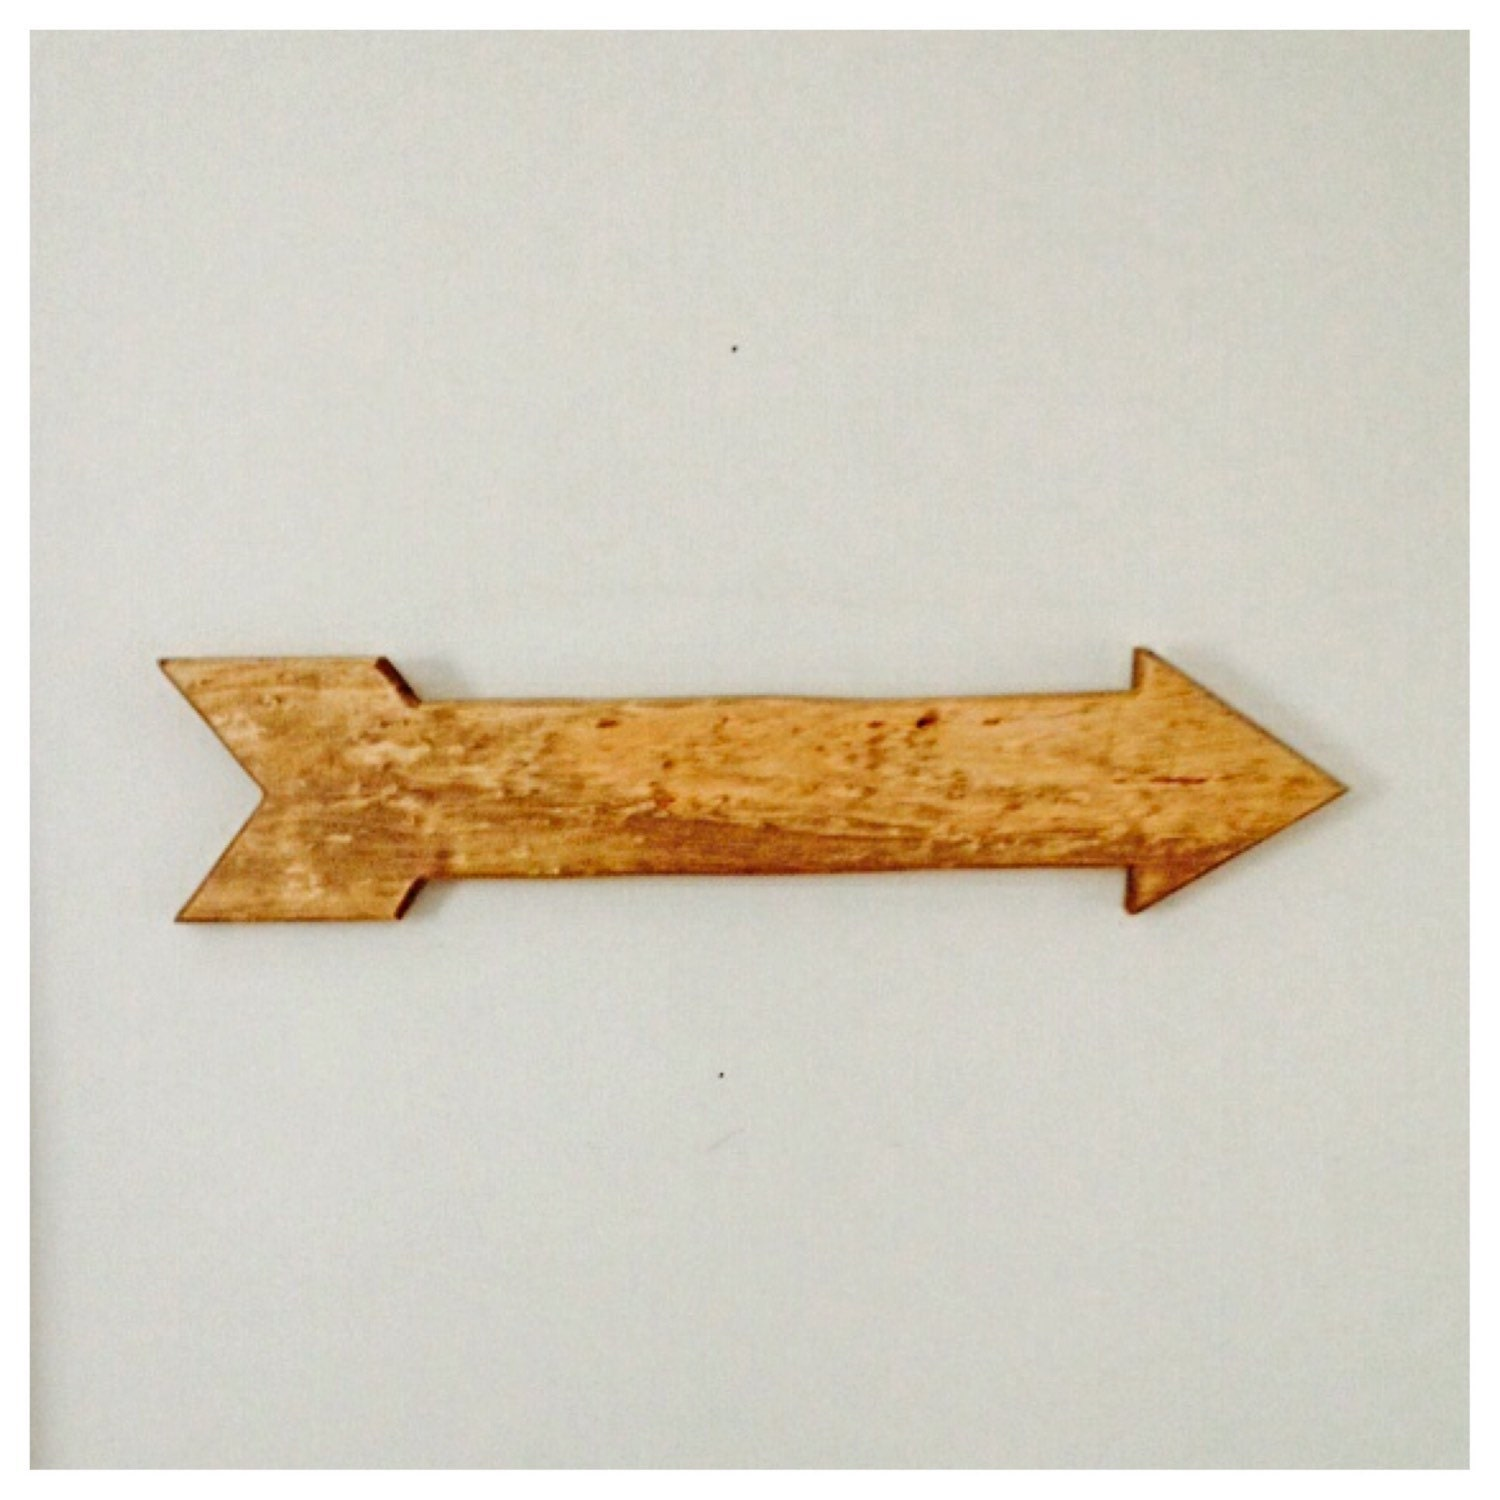 Arrows For Wall Decor : Wooden arrow rustic wall decor wedding home by